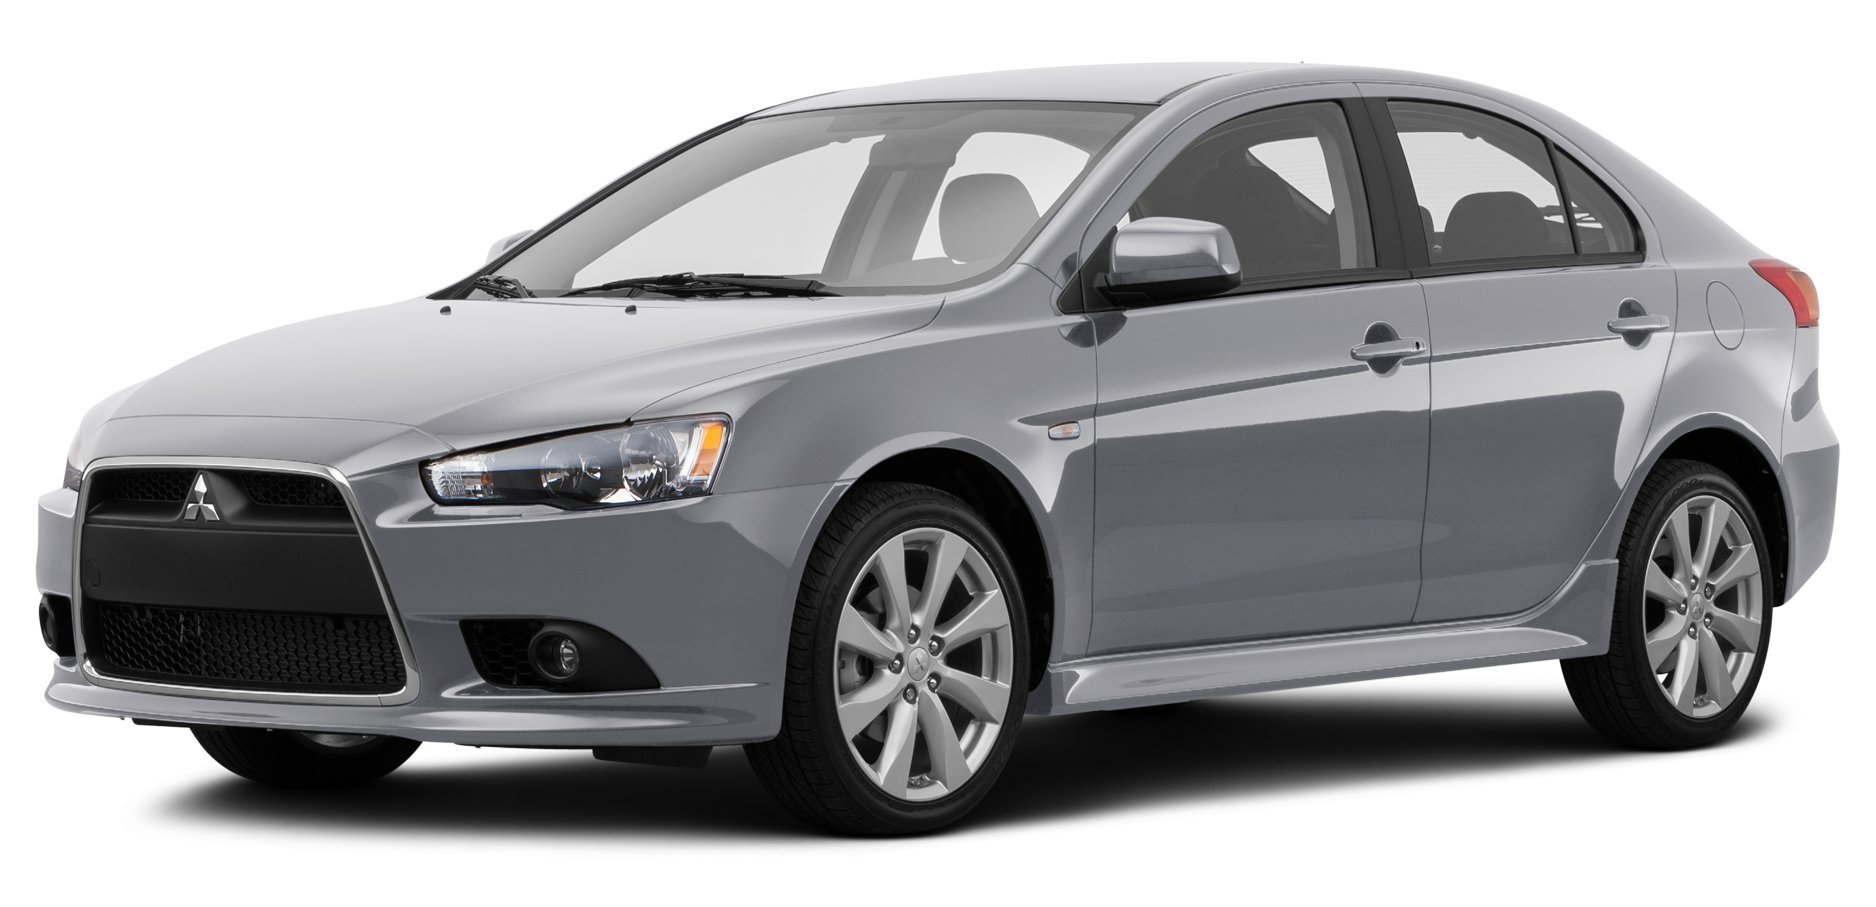 2014 mitsubishi lancer reviews images and. Black Bedroom Furniture Sets. Home Design Ideas